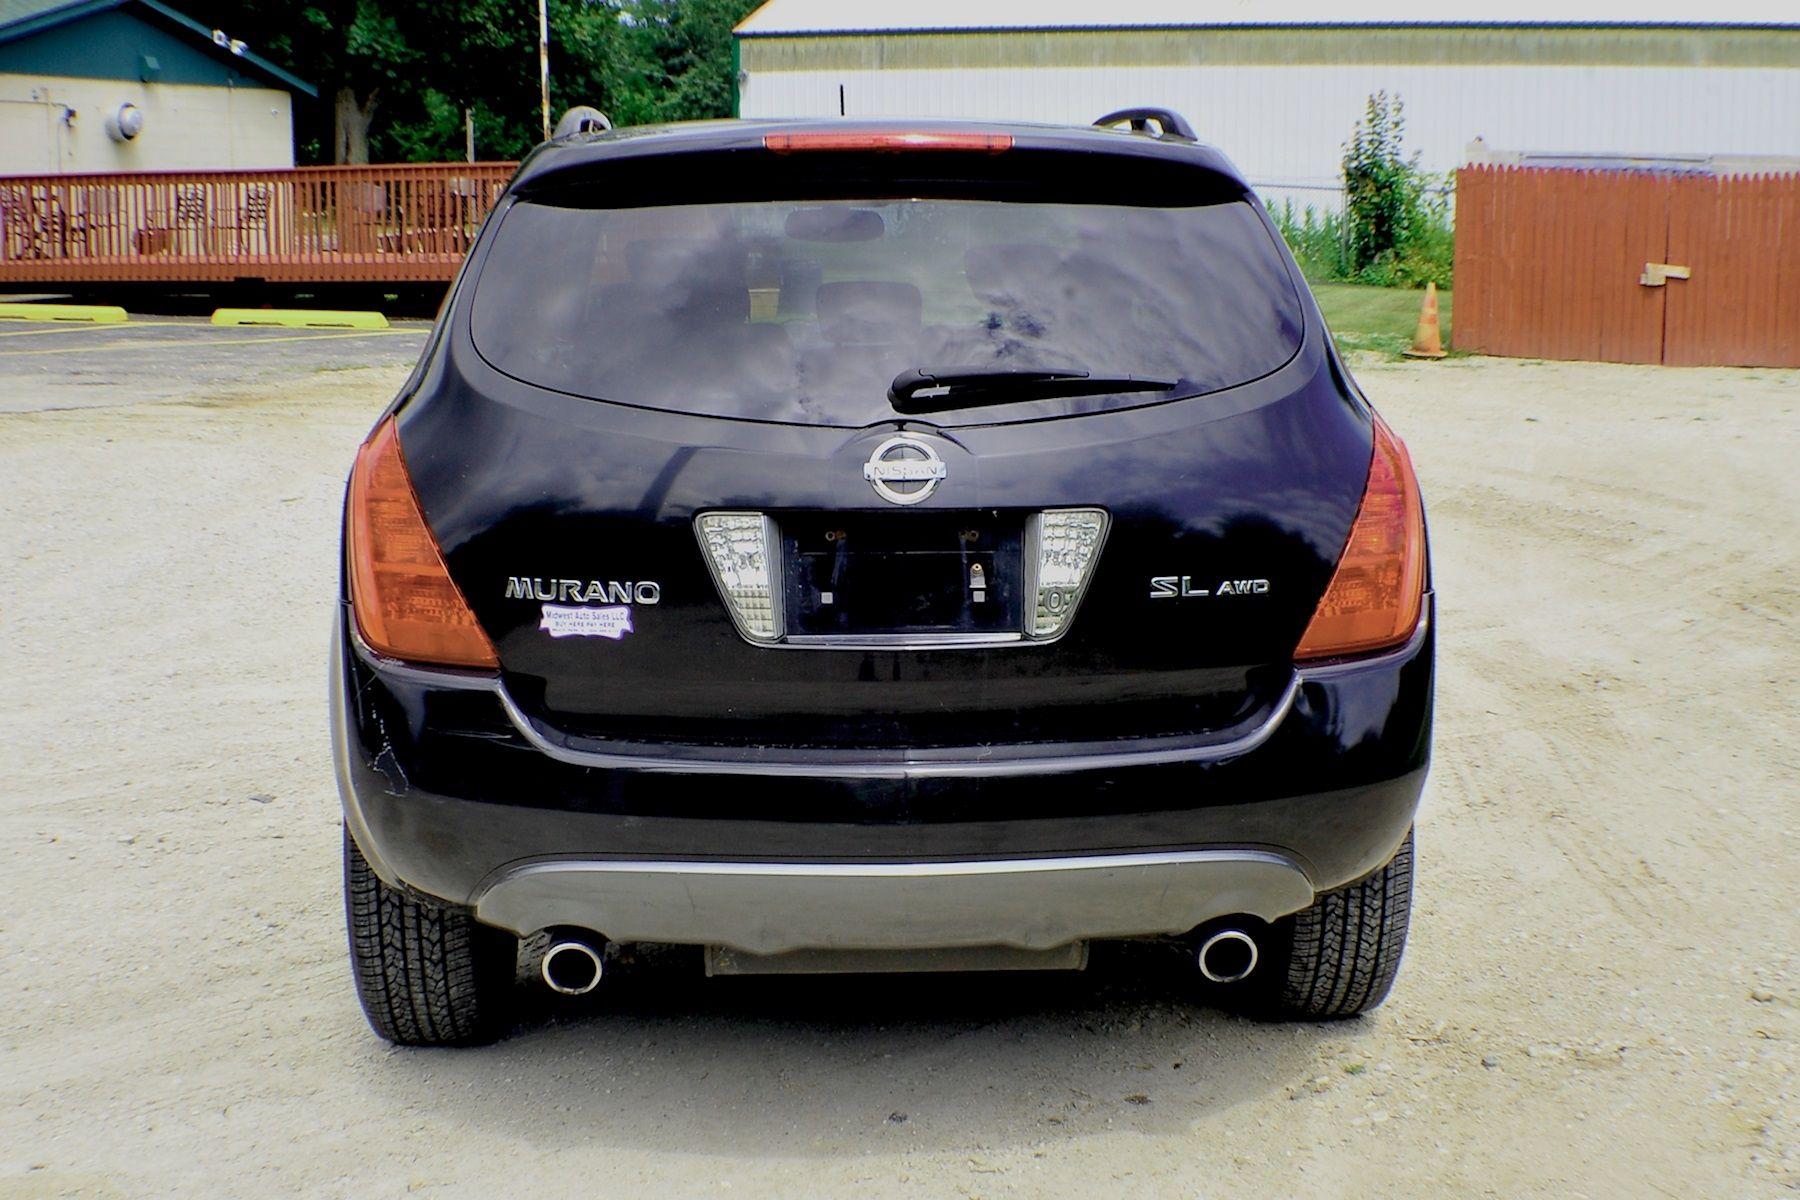 2005 Nissan Murano SL Black AWD SUV Sale Buffalo Grove Deerfield Fox Lake Antioch